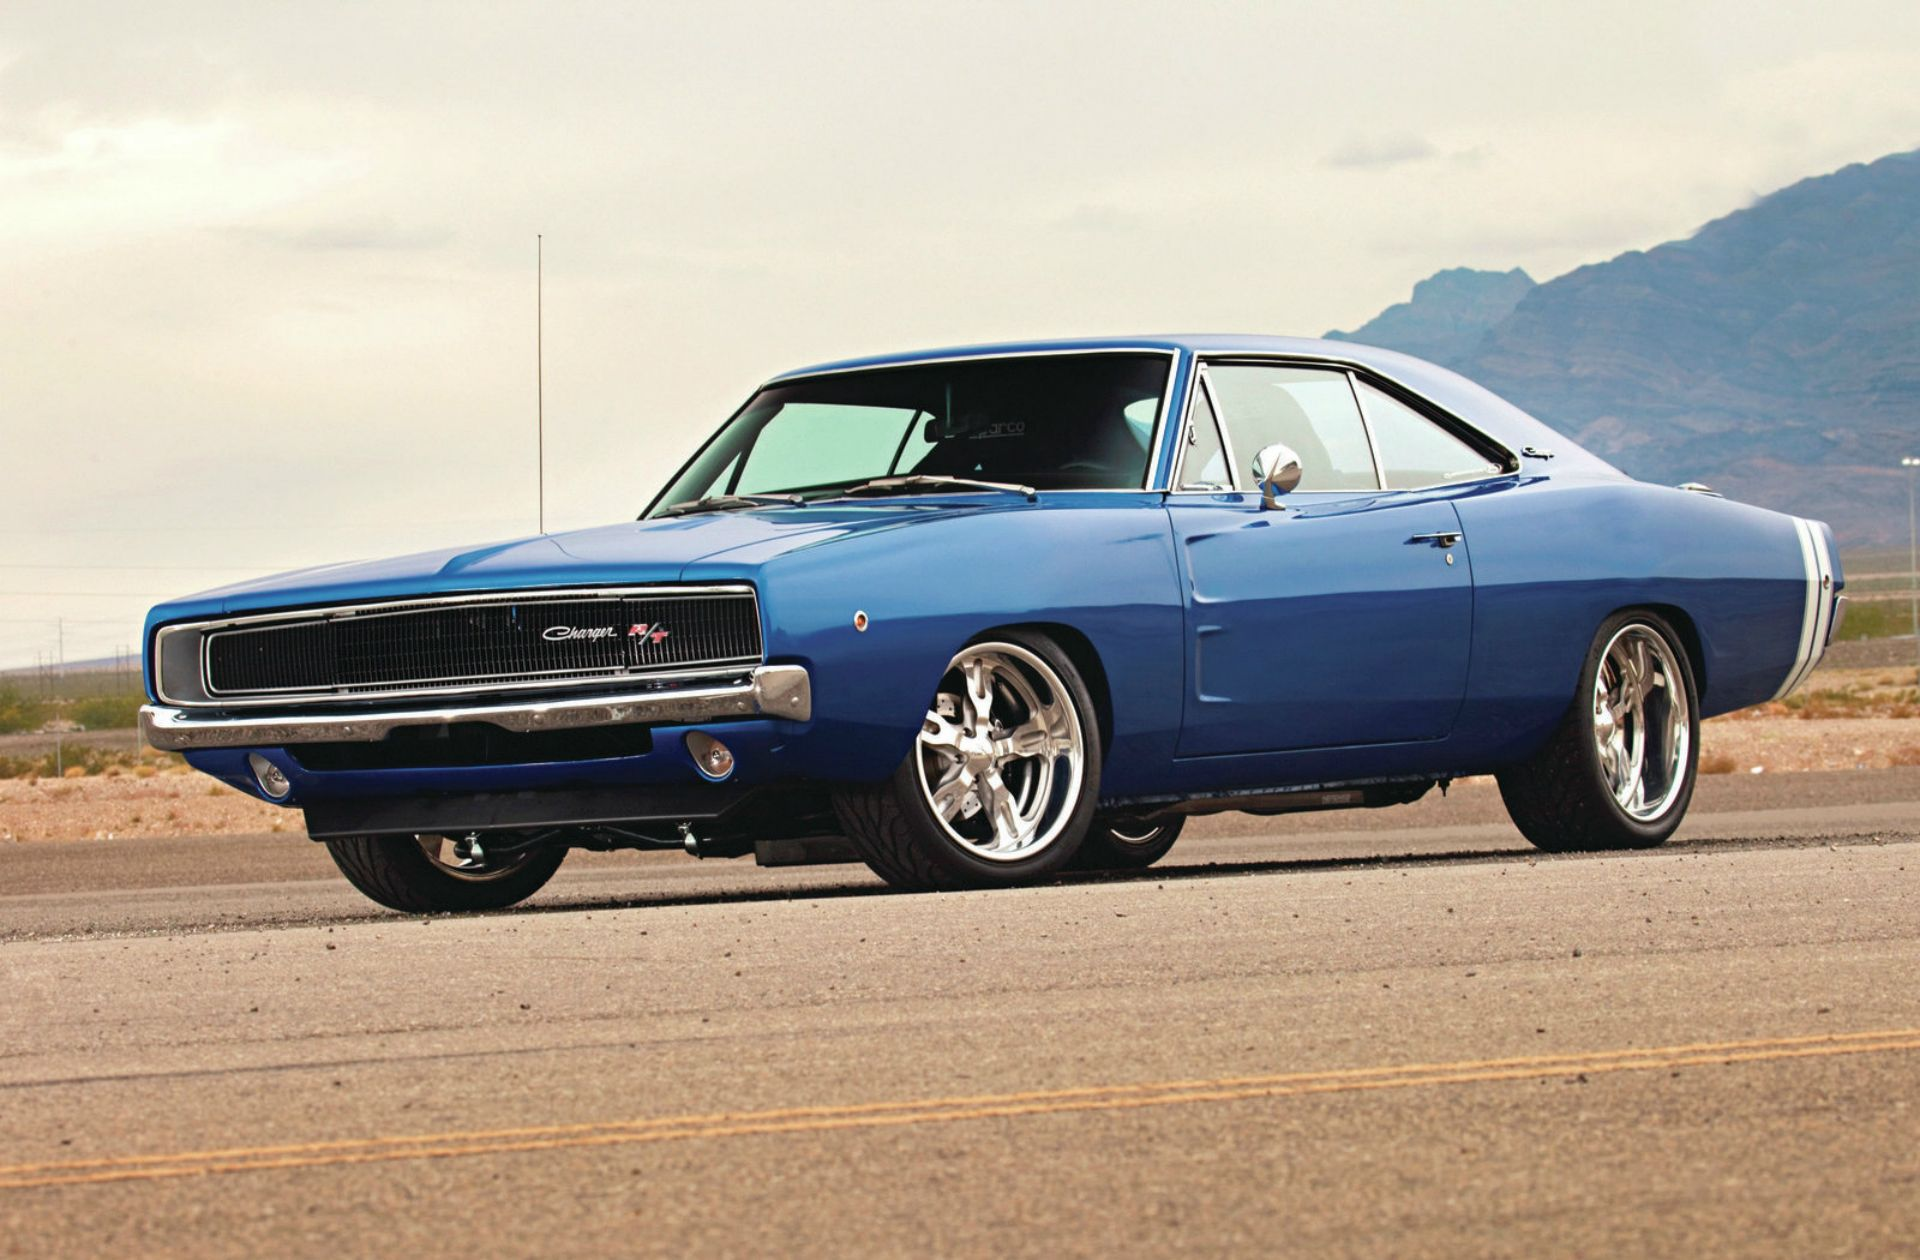 60s Muscle Cars With Images 1968 Dodge Charger Dodge Charger